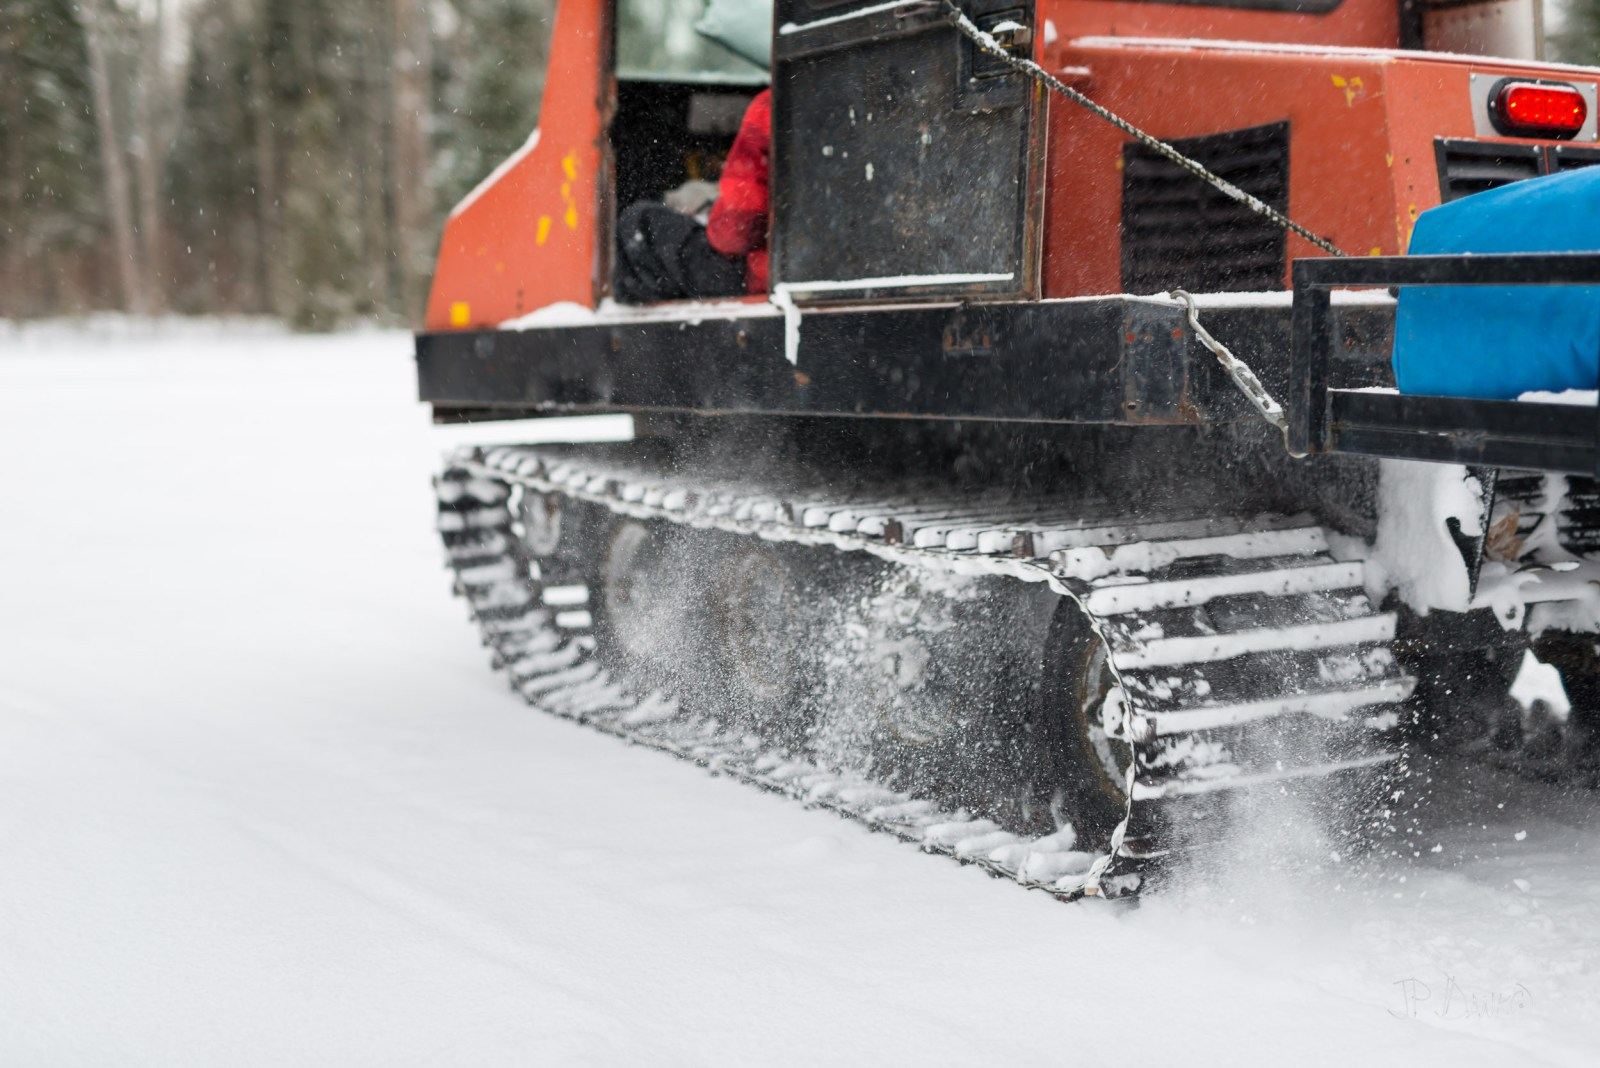 Caterpillar tracks of vintage snow grooming machine get good traction